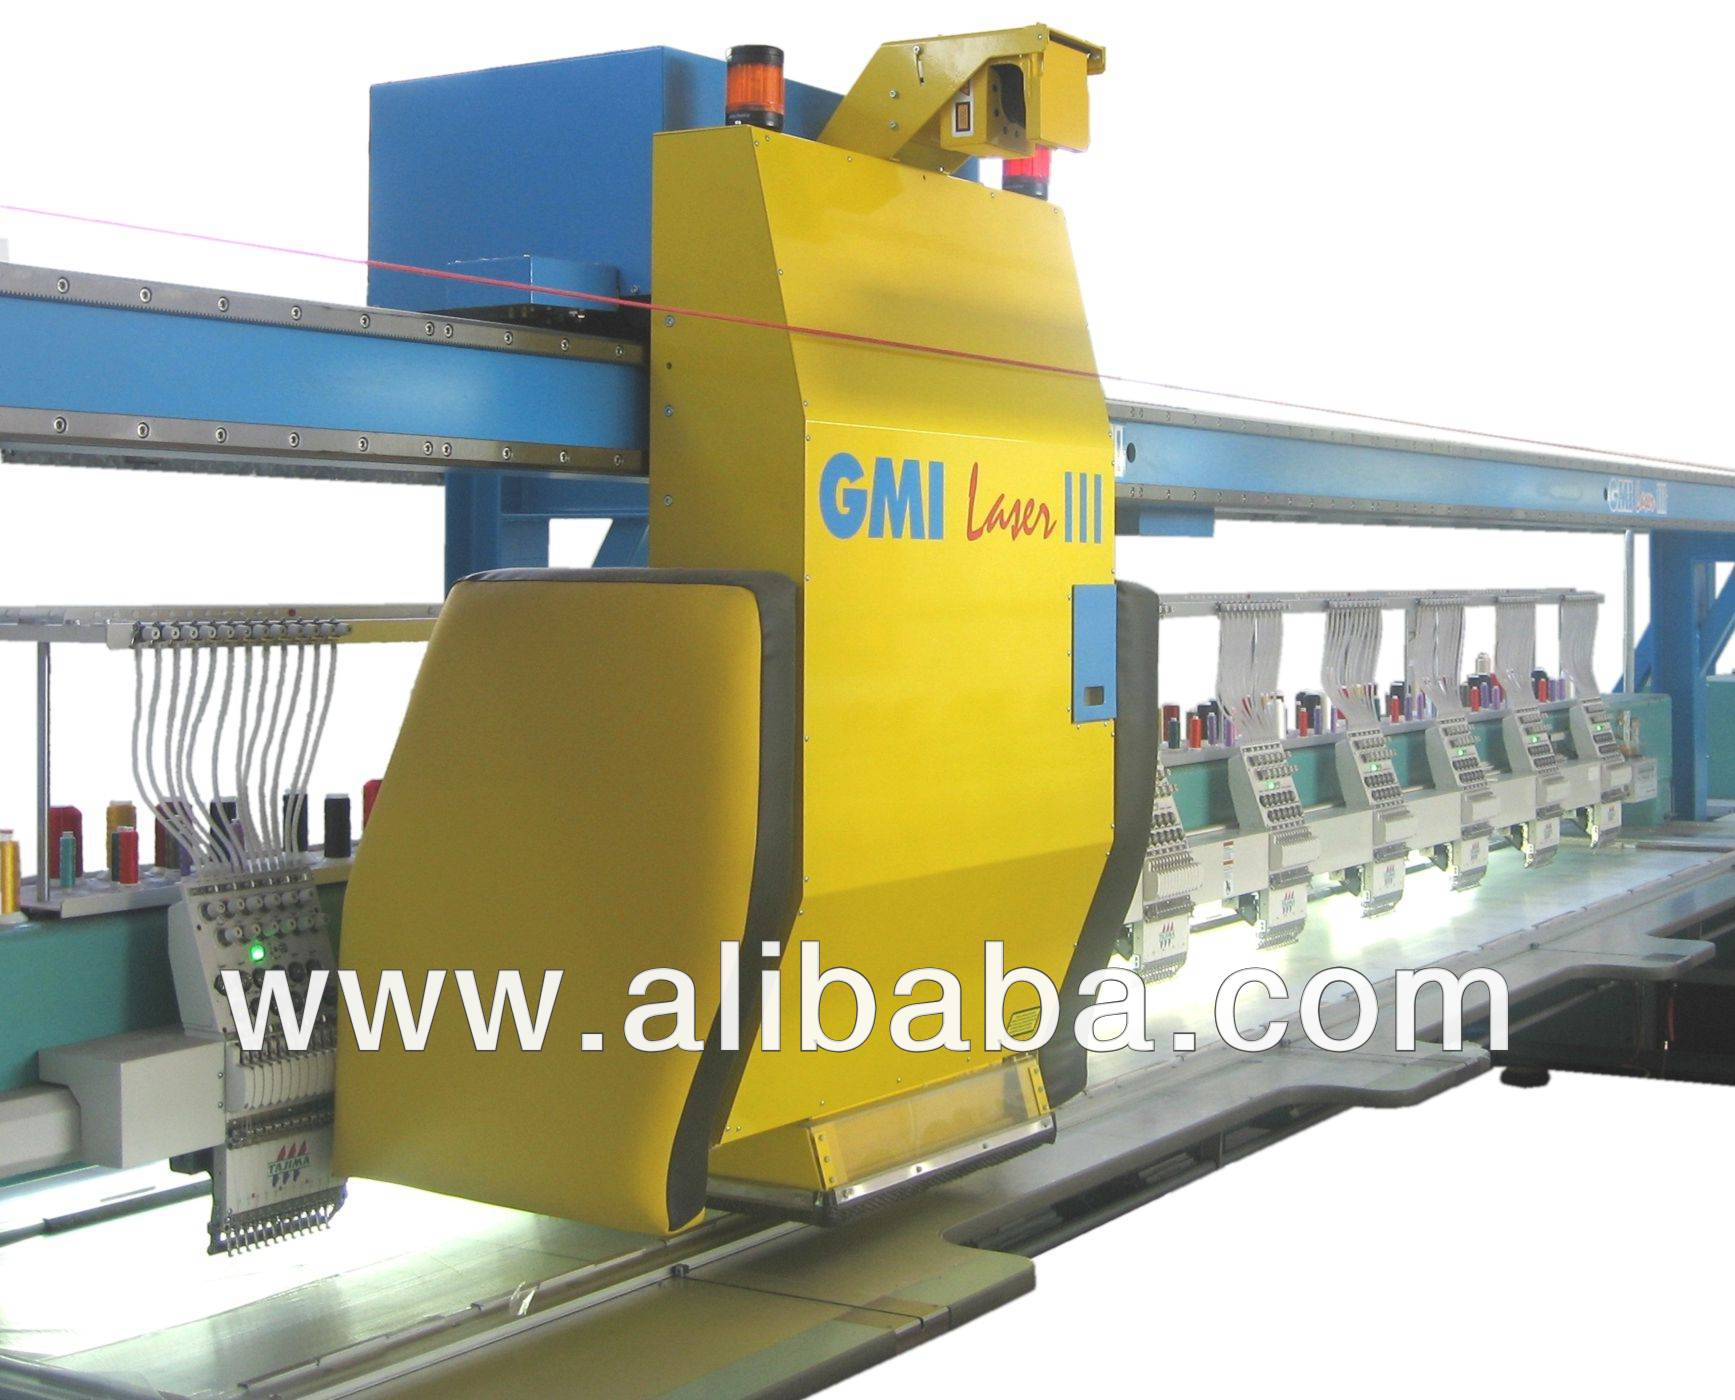 GMI Laser III laser cutting machine